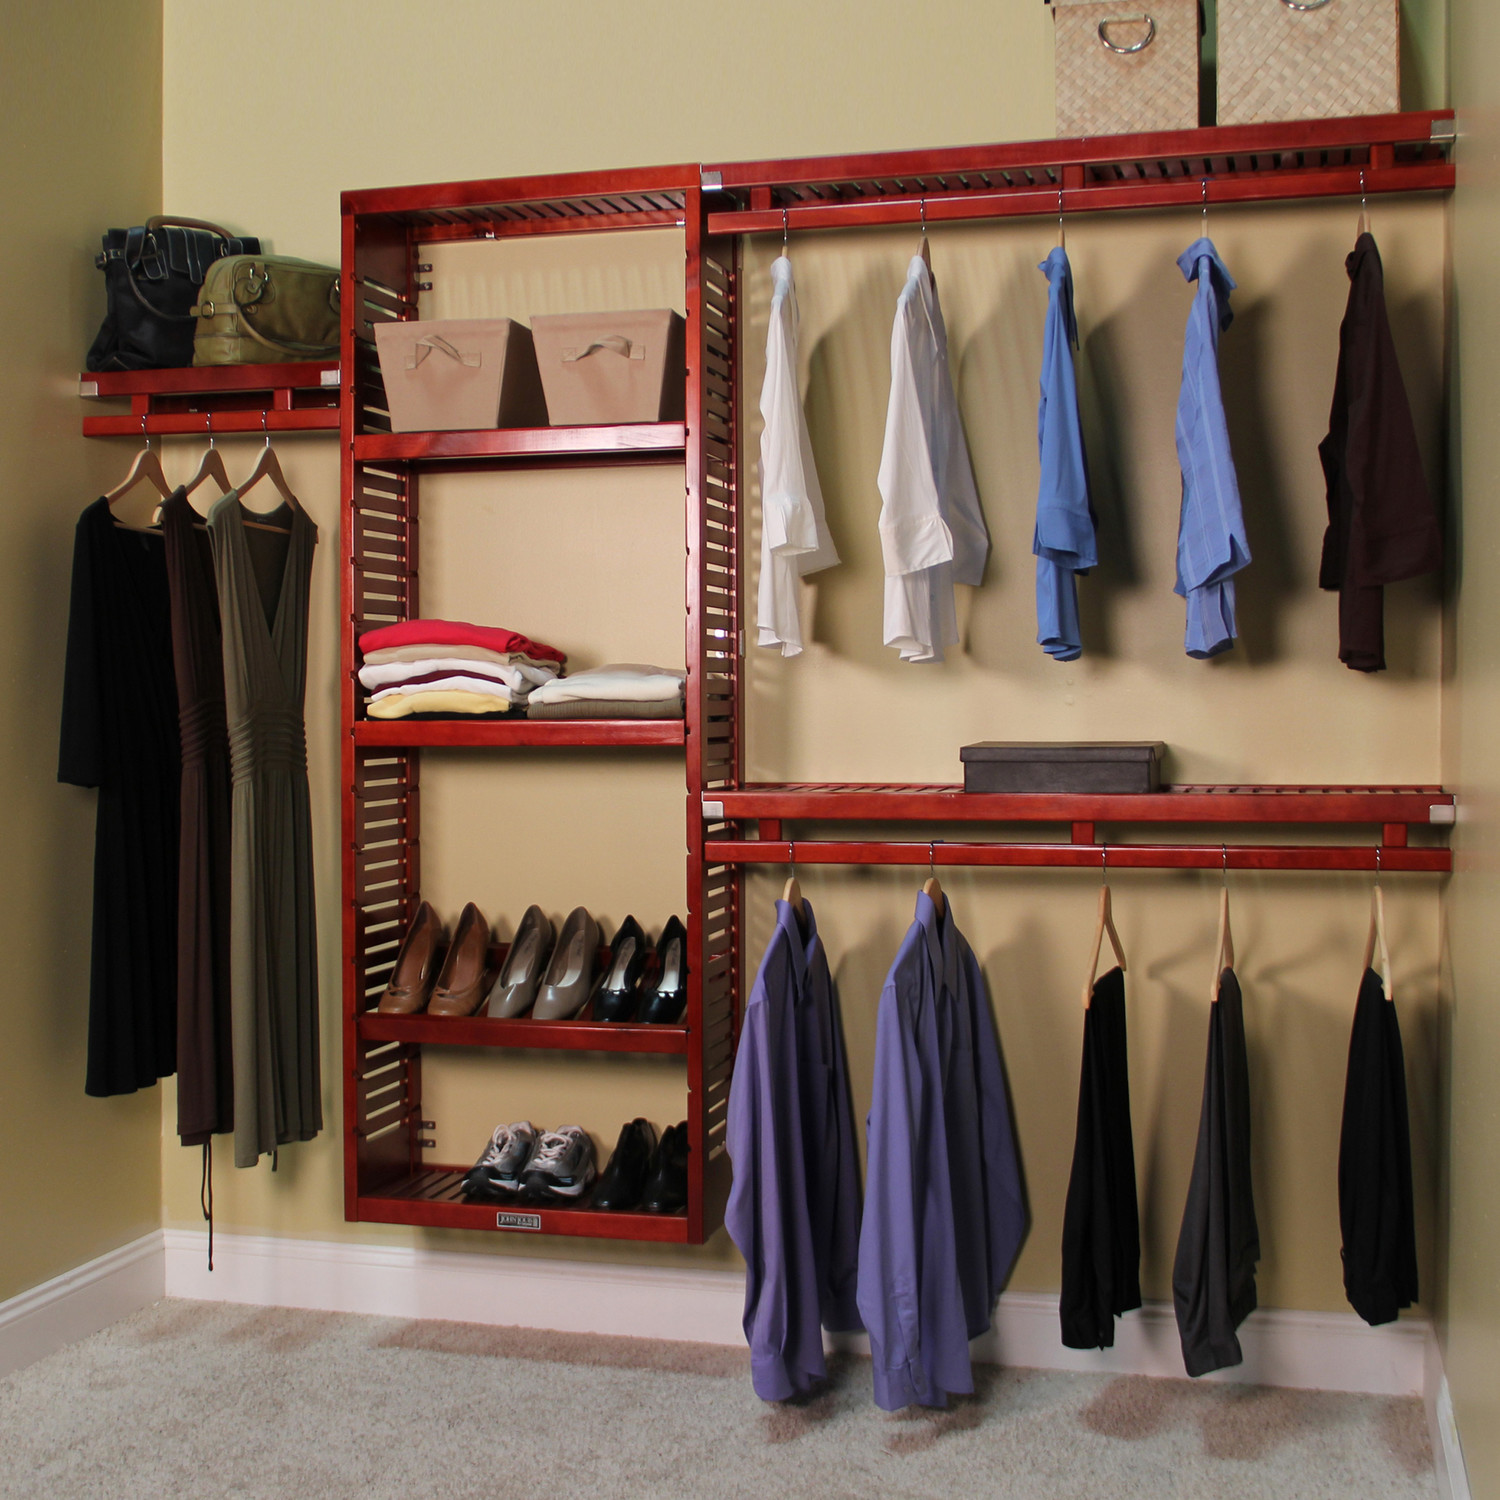 Cool Diy Closet System Ideas For Organized People | Elly\u0027s DIY Blog